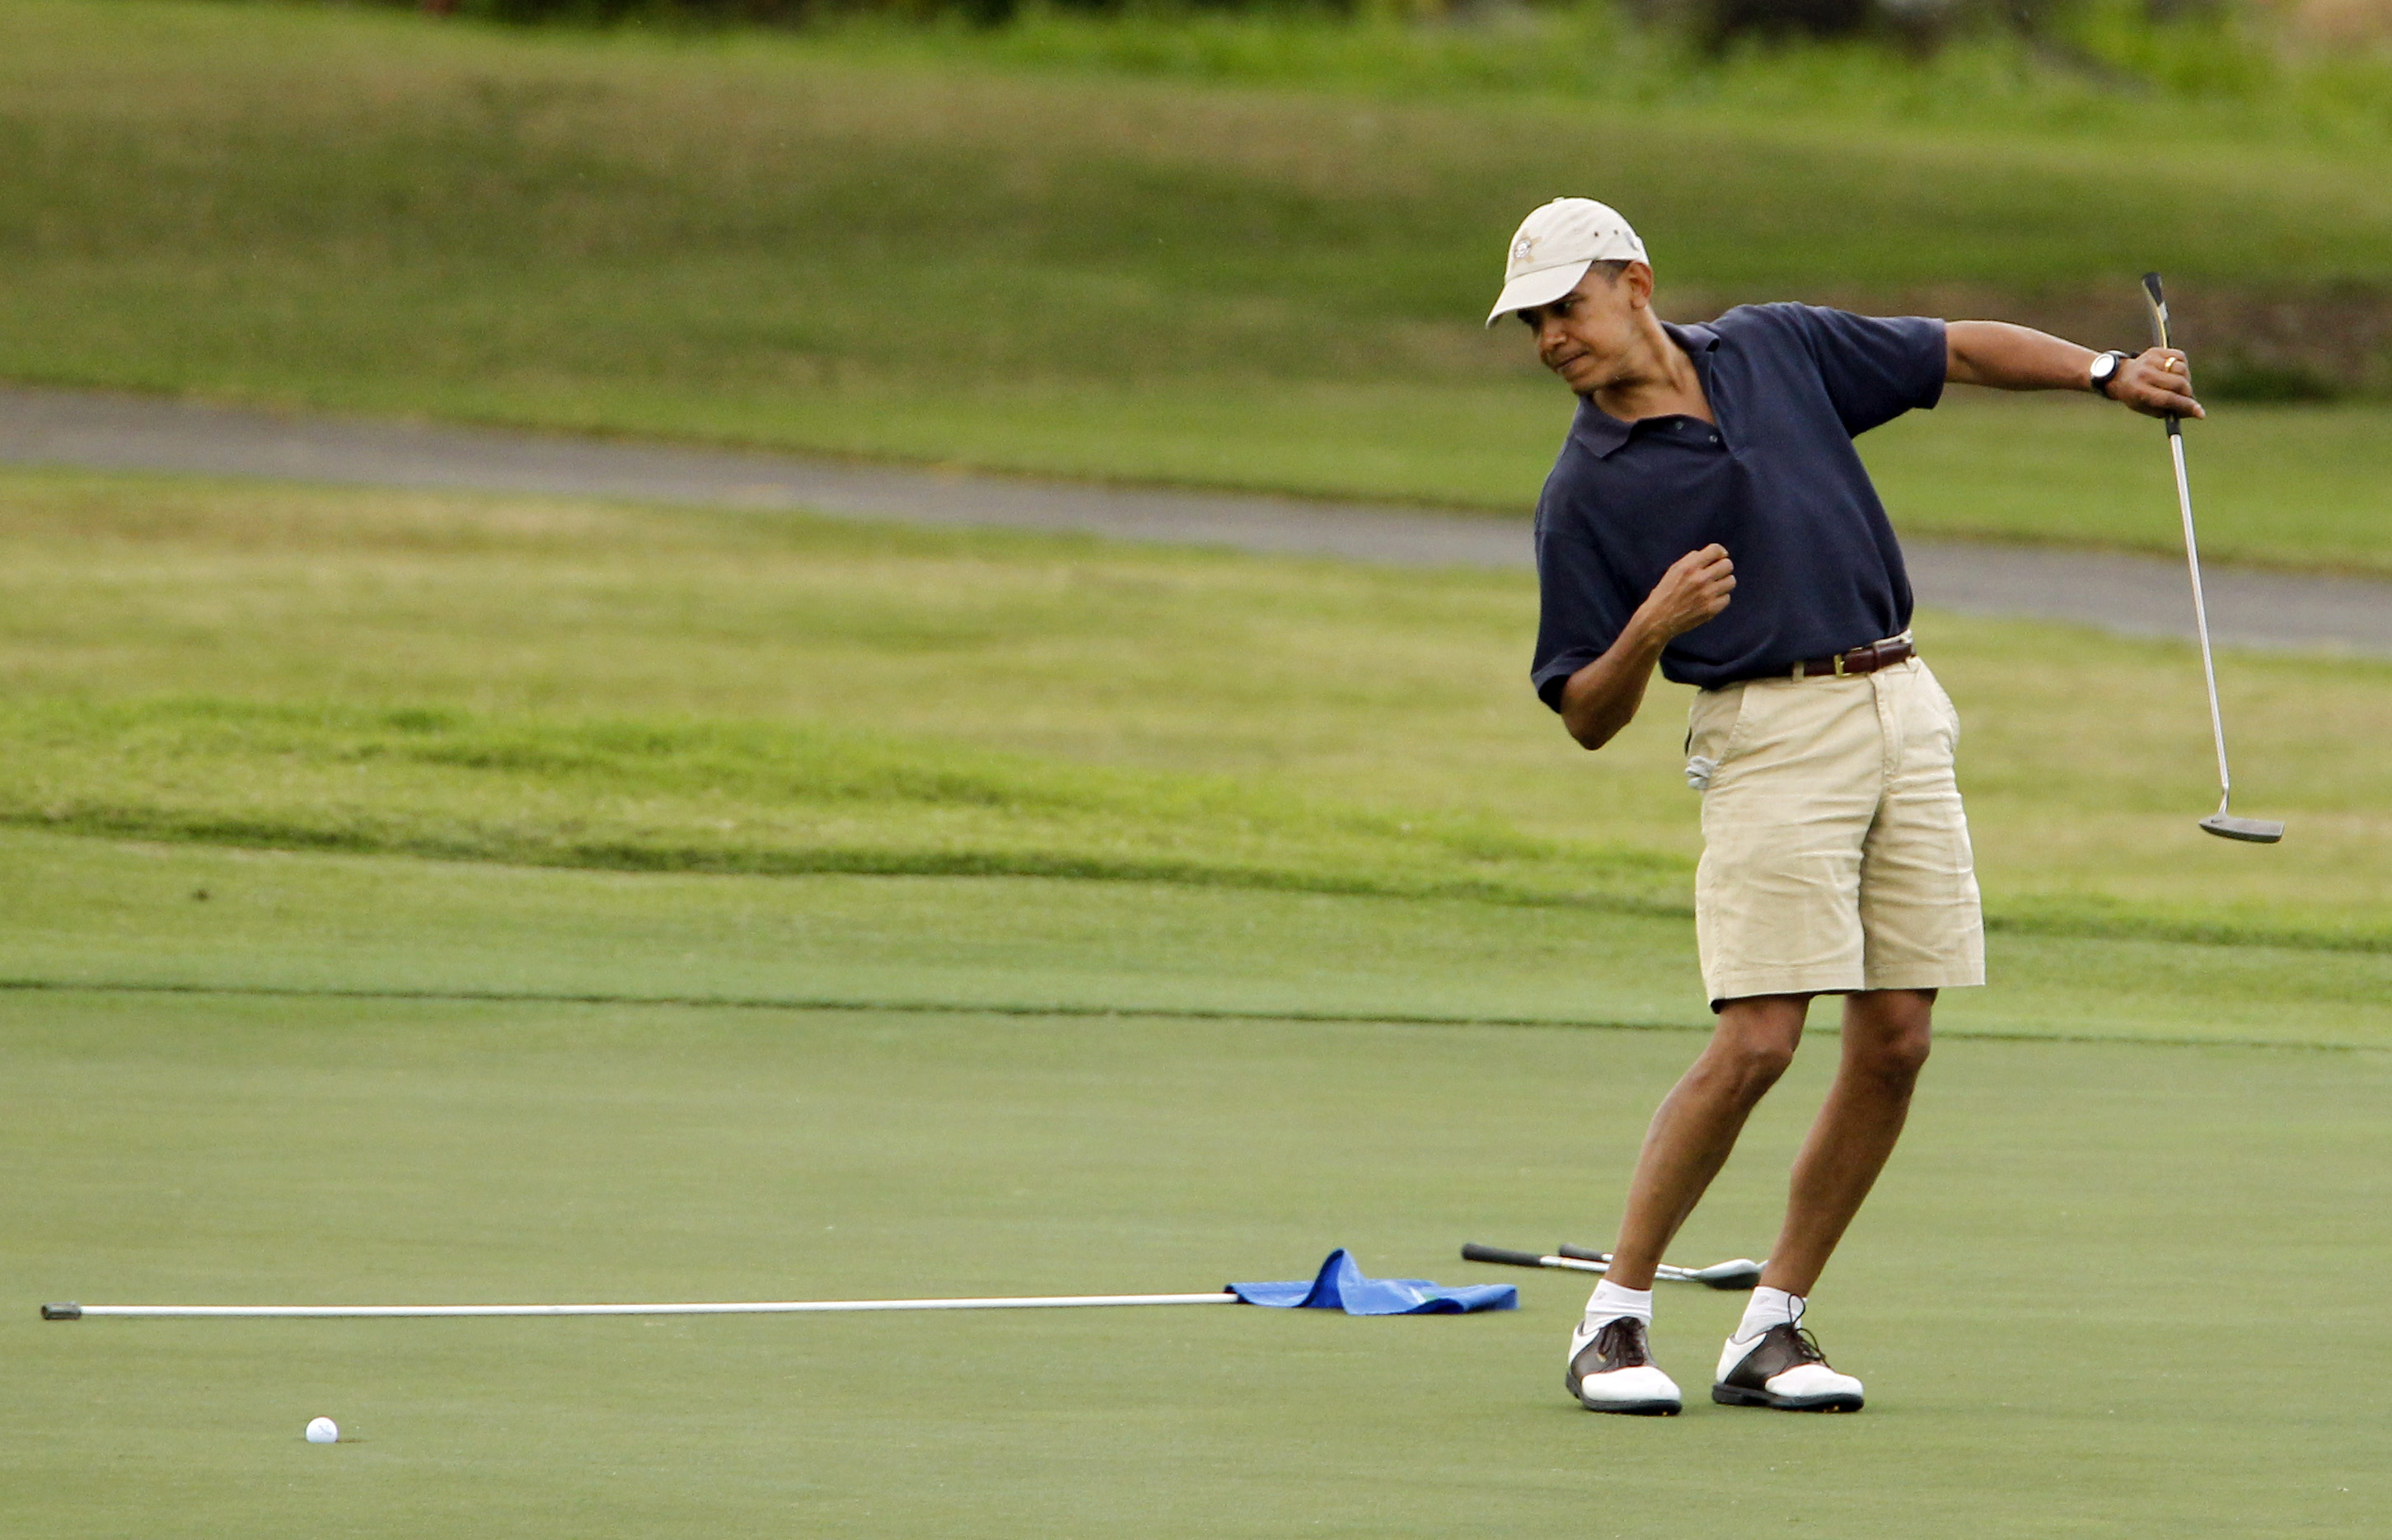 President Obama at Mid-Pacific County Club in Kailua, Hawaii, on Dec. 31, 2009.